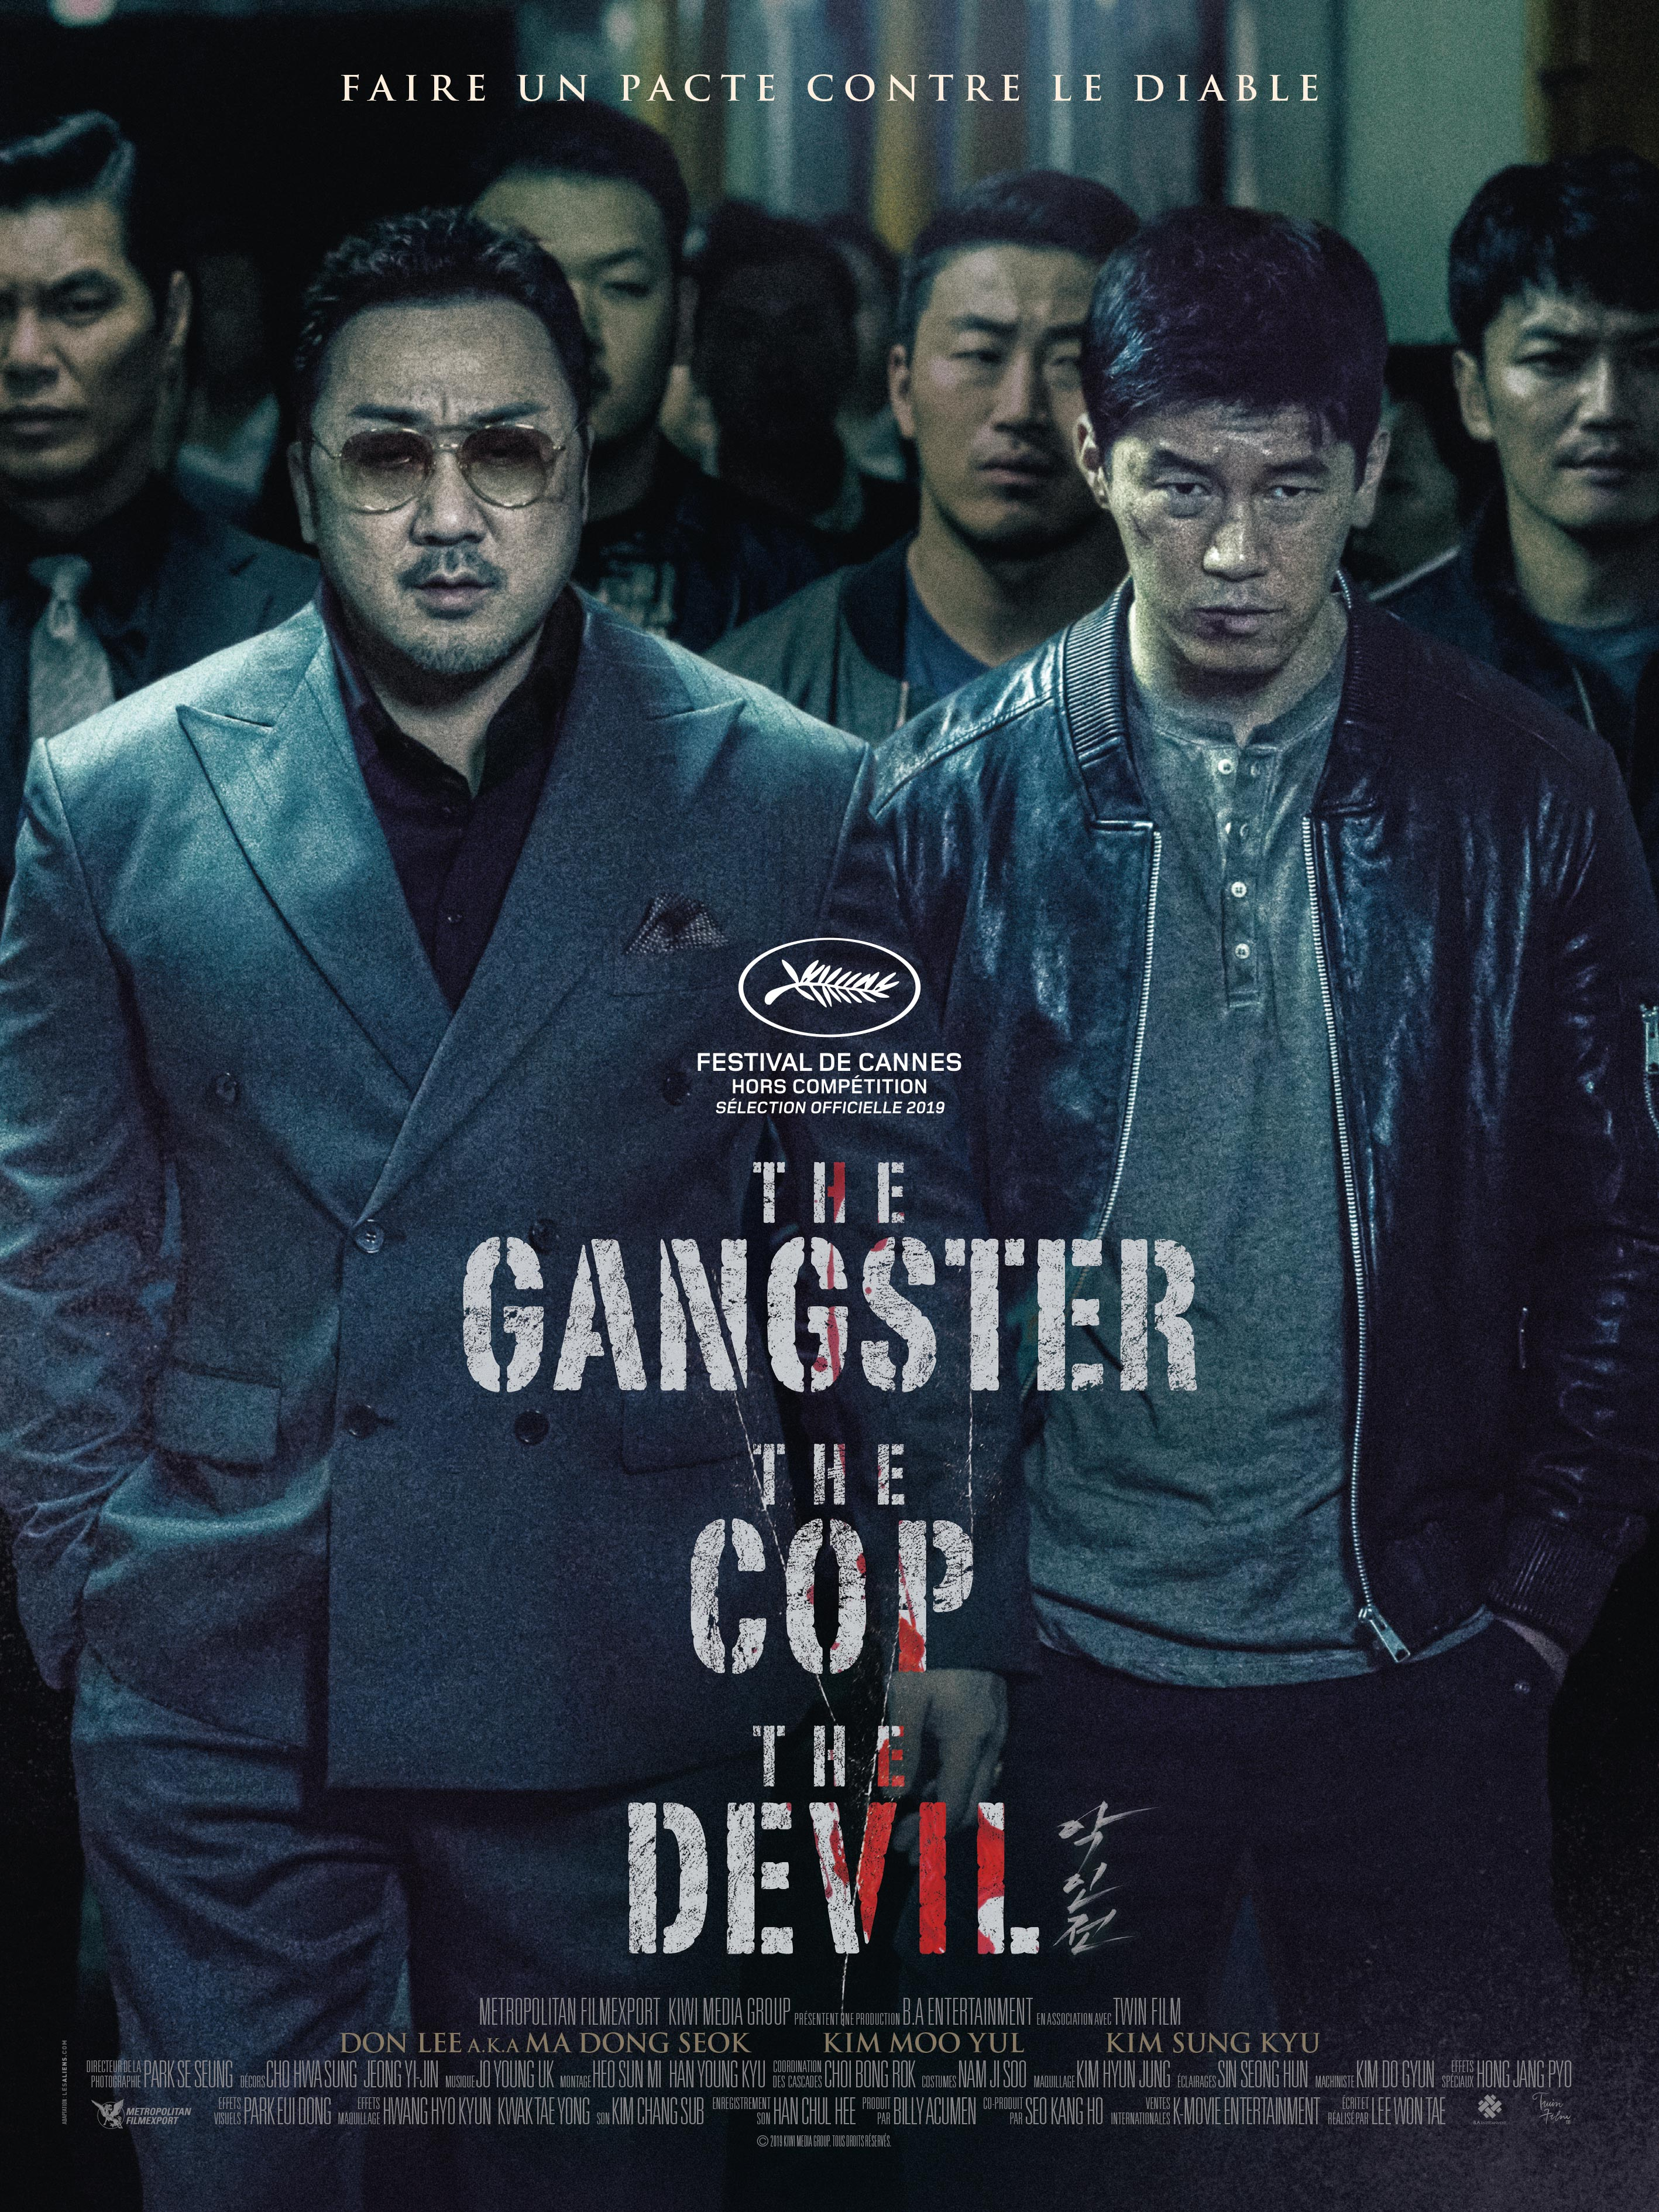 The Gangster The Cop The Devil (2019) Dual Audio 720p WEBRip [Hindi + English] Free Download